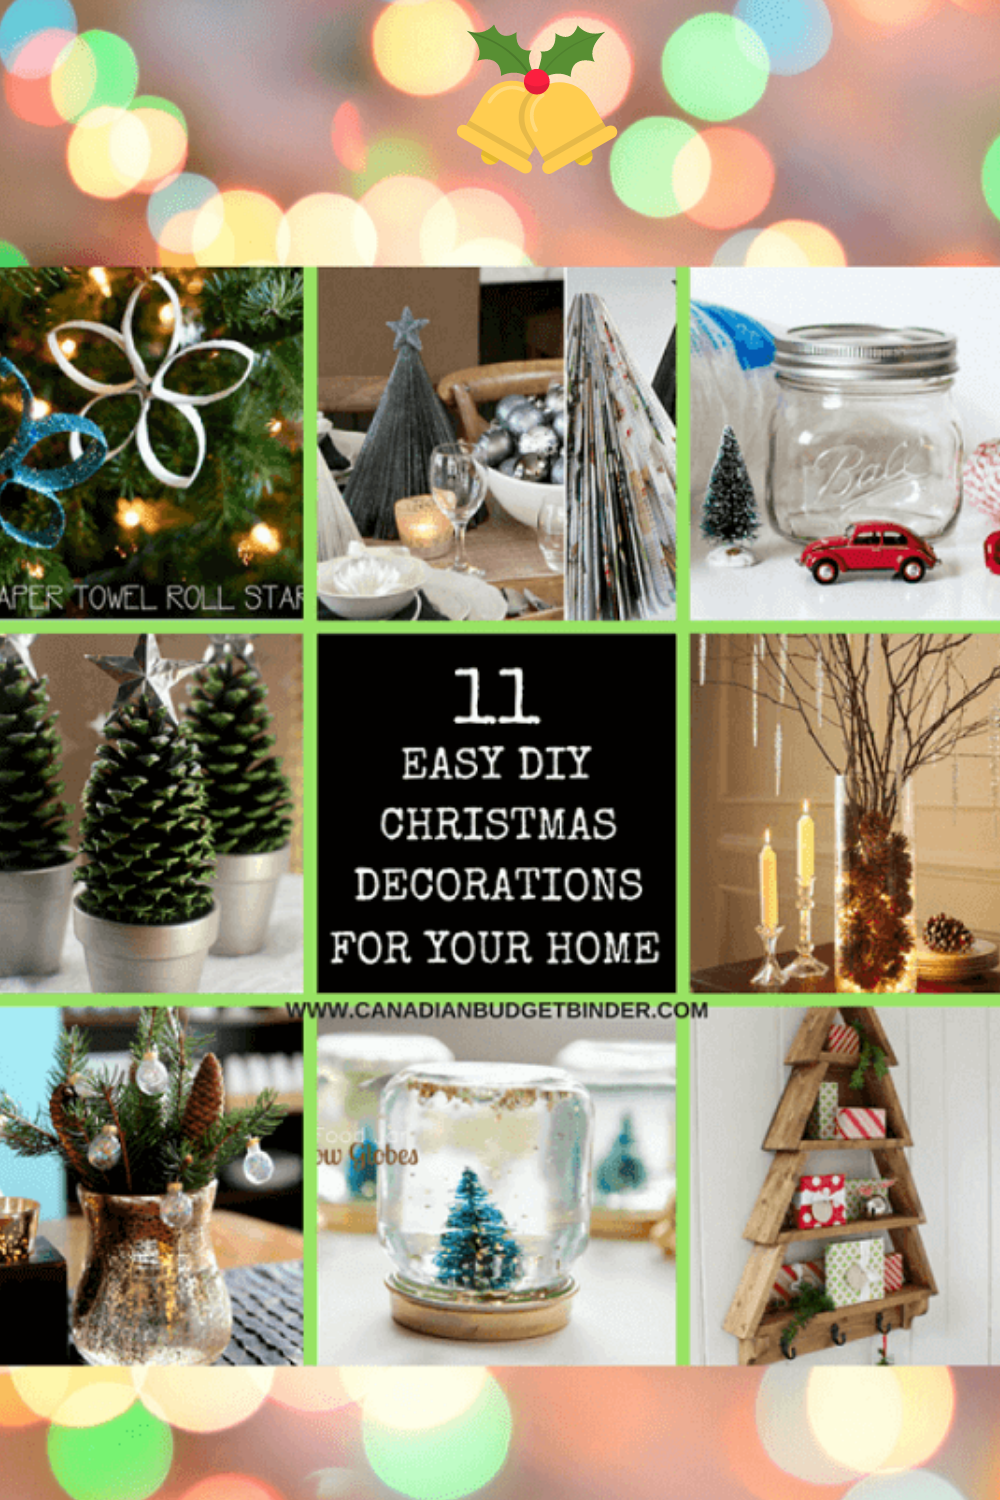 11 Diy Easy Christmas Decorations For Your Home Canadian Budget Binder